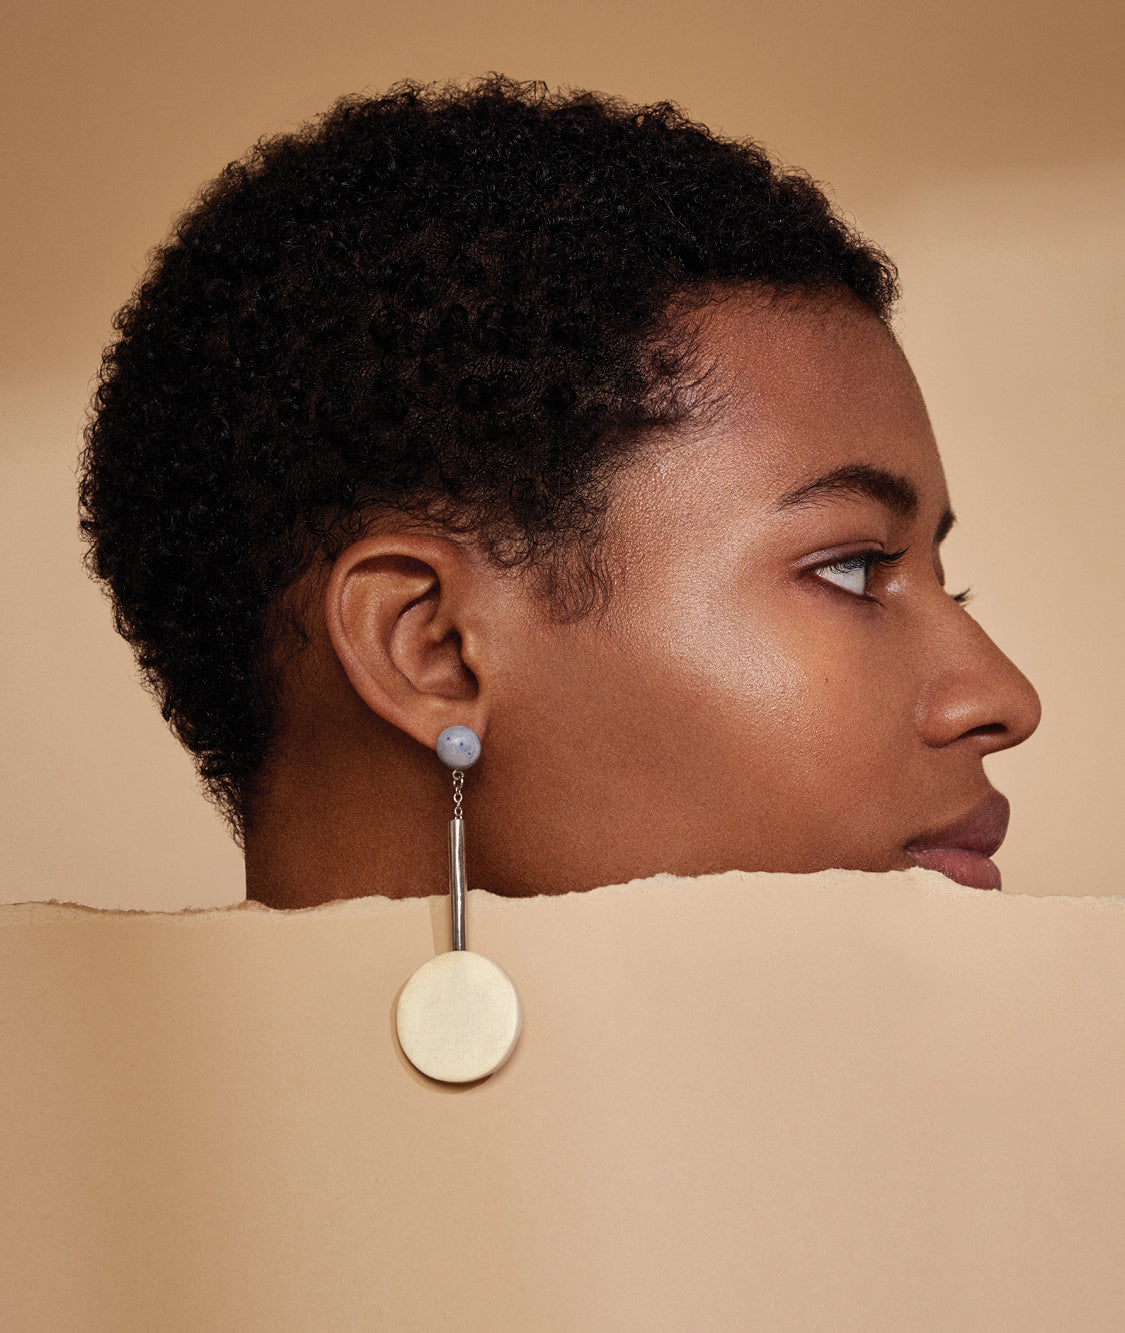 A model in profile dangles a single round earring over the rough edge of a ripped sheet of paper.